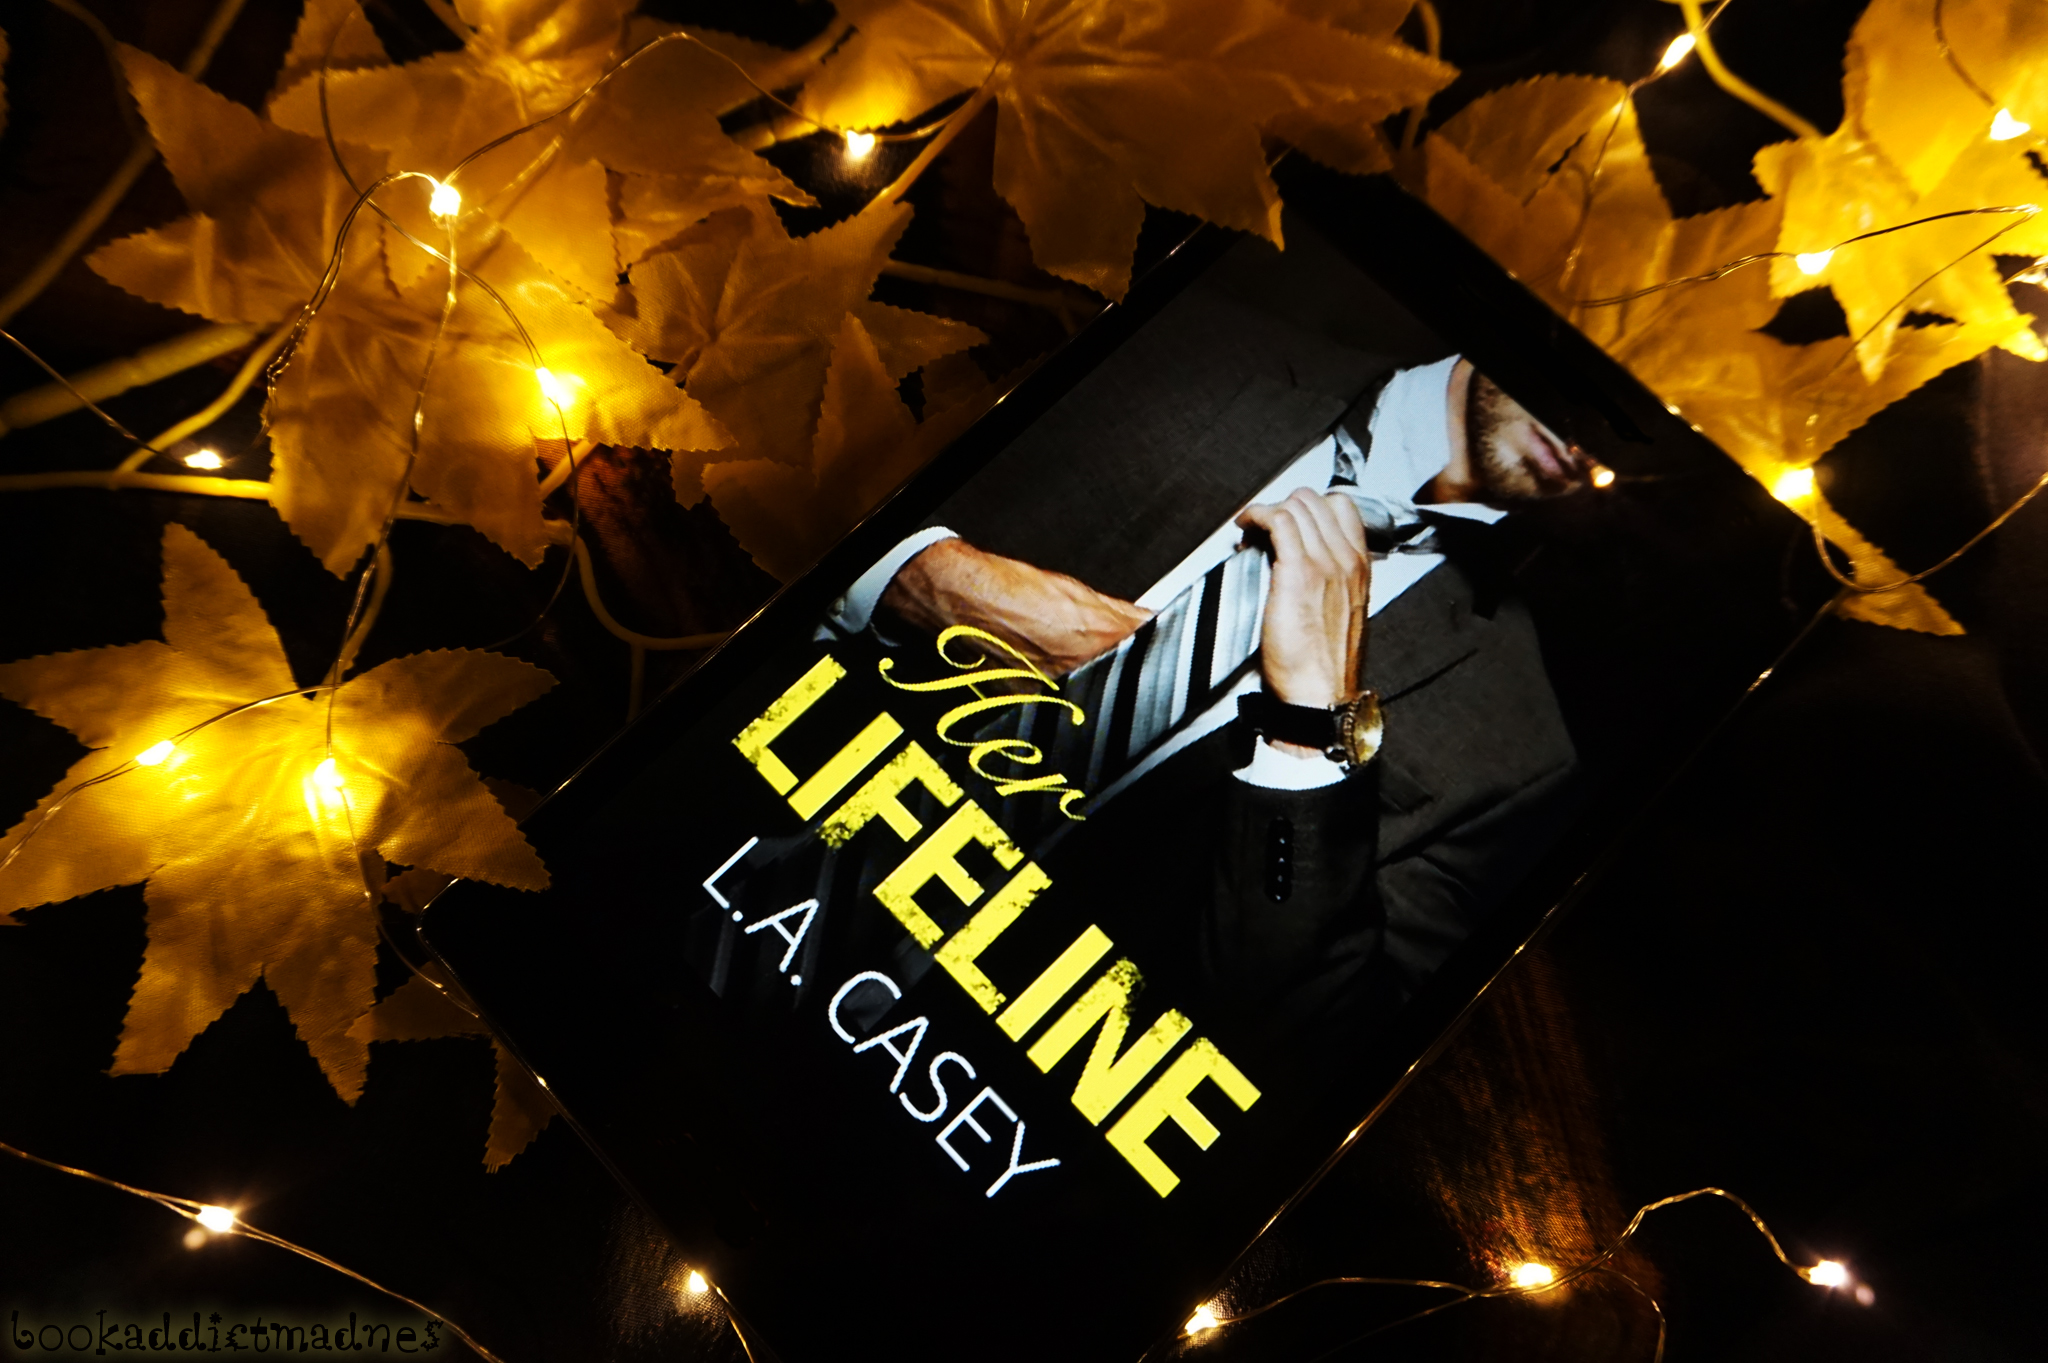 Her Lifeline by L.A. Casey